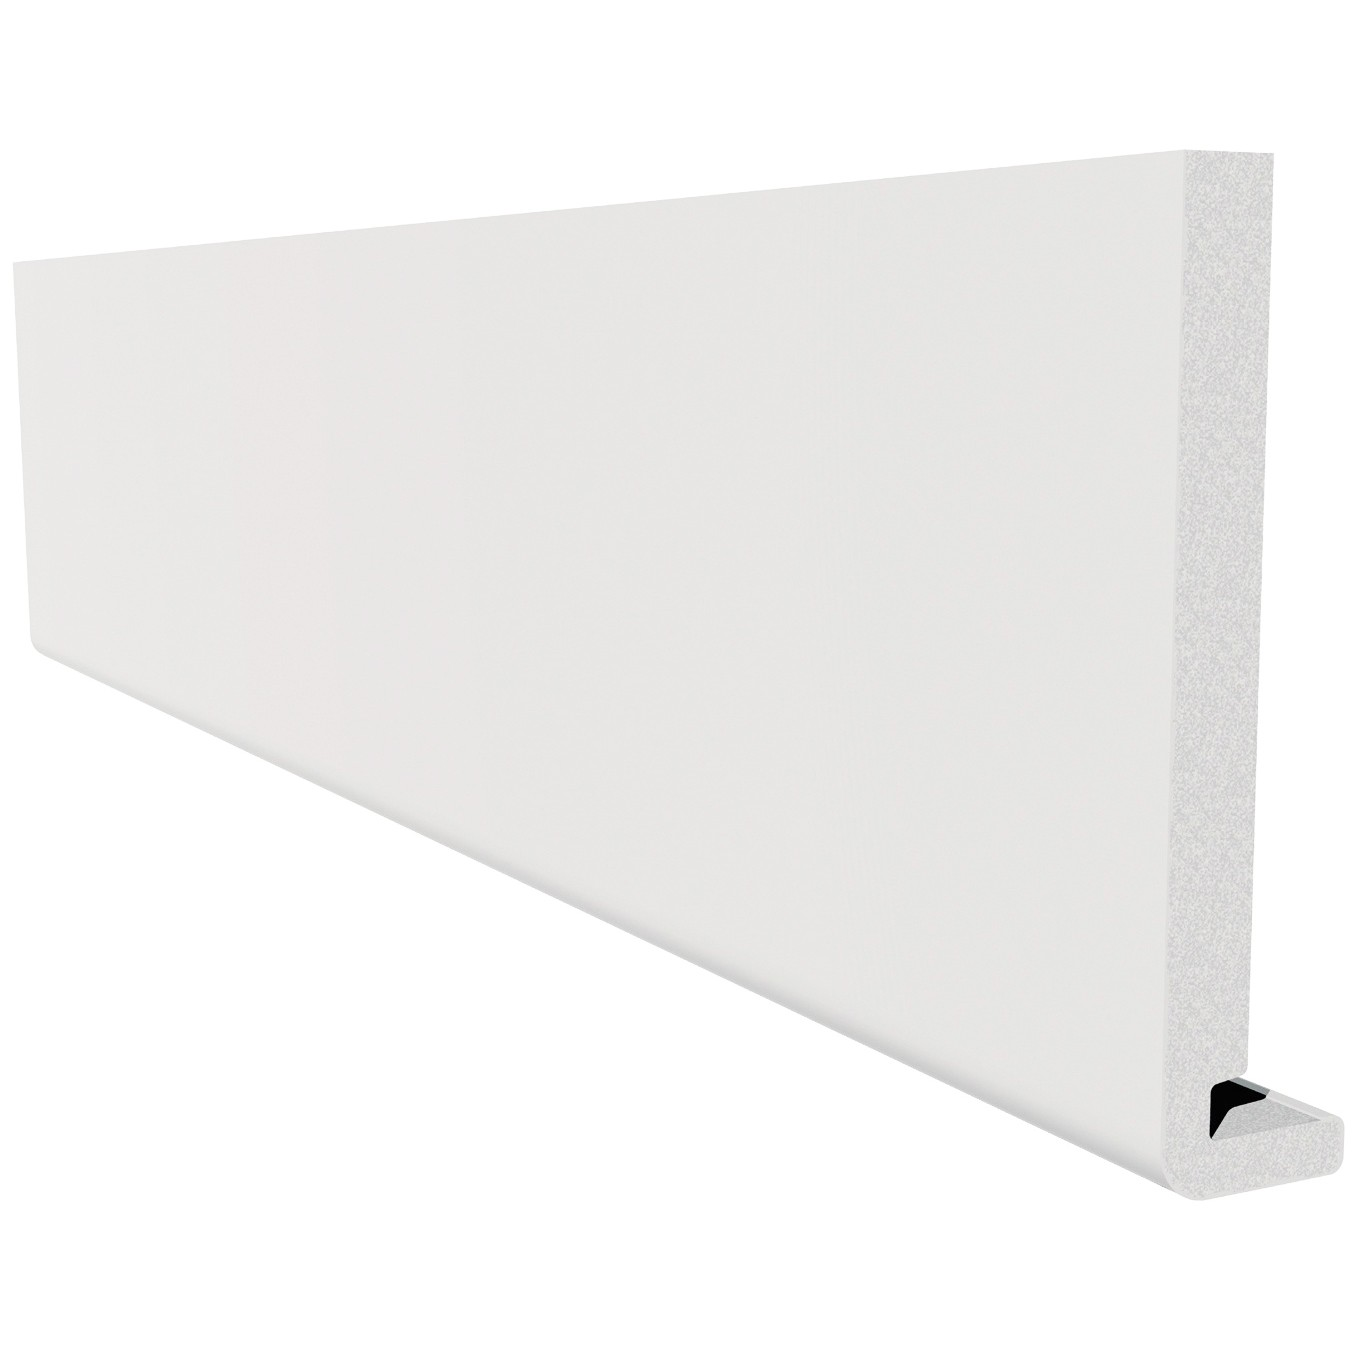 Freefoam Magnum Square Leg 18mm Fascia Board - White, 150mm, 2.5 metre